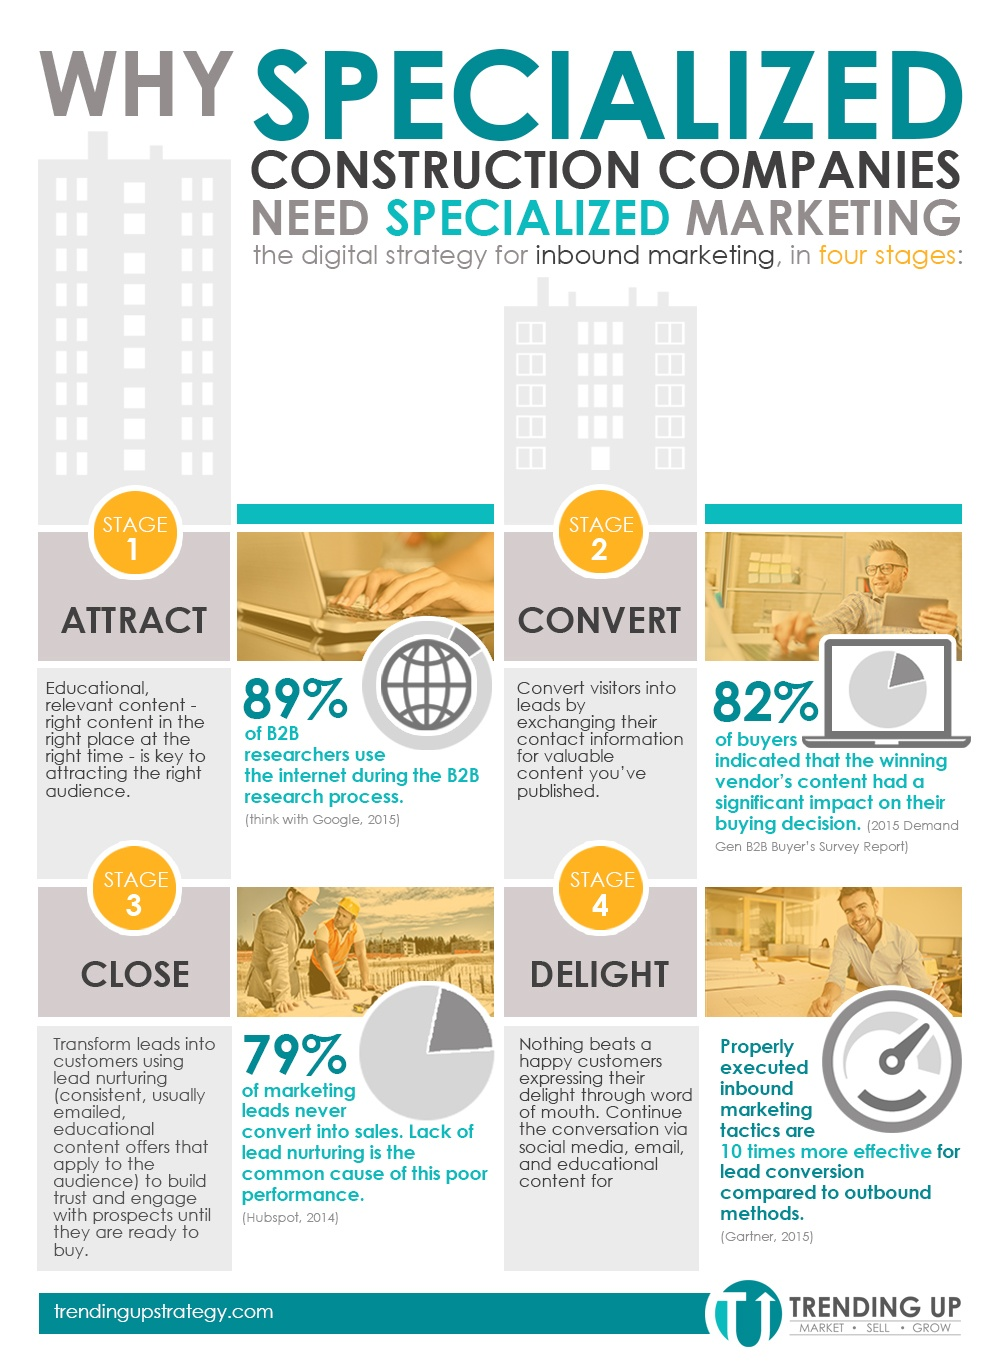 specialized-construction-needs-specialized-marketing-infographic.jpg